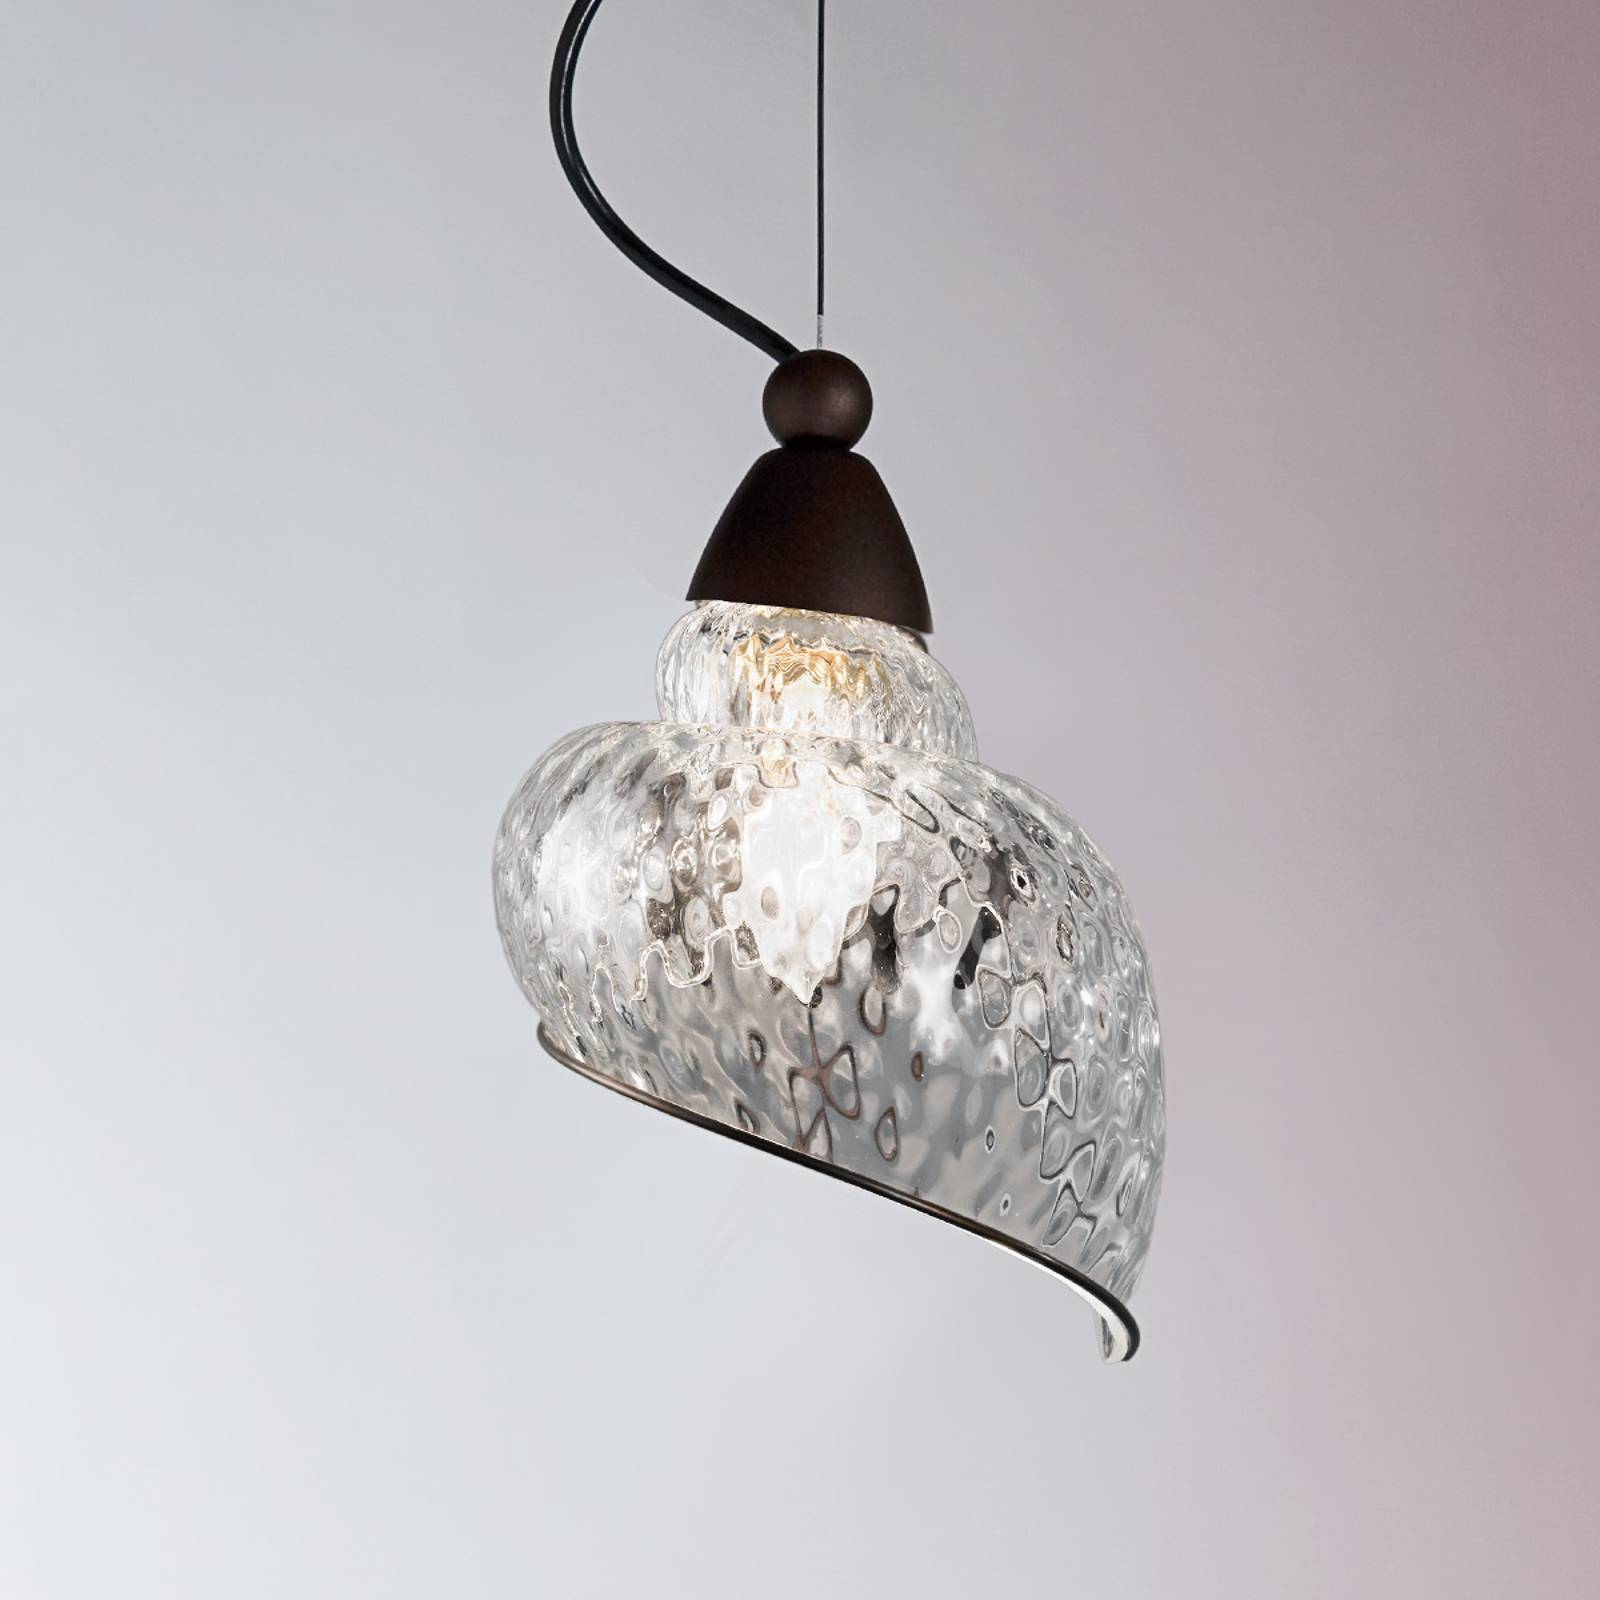 Chiocciola - one-bulb hanging light from Siru